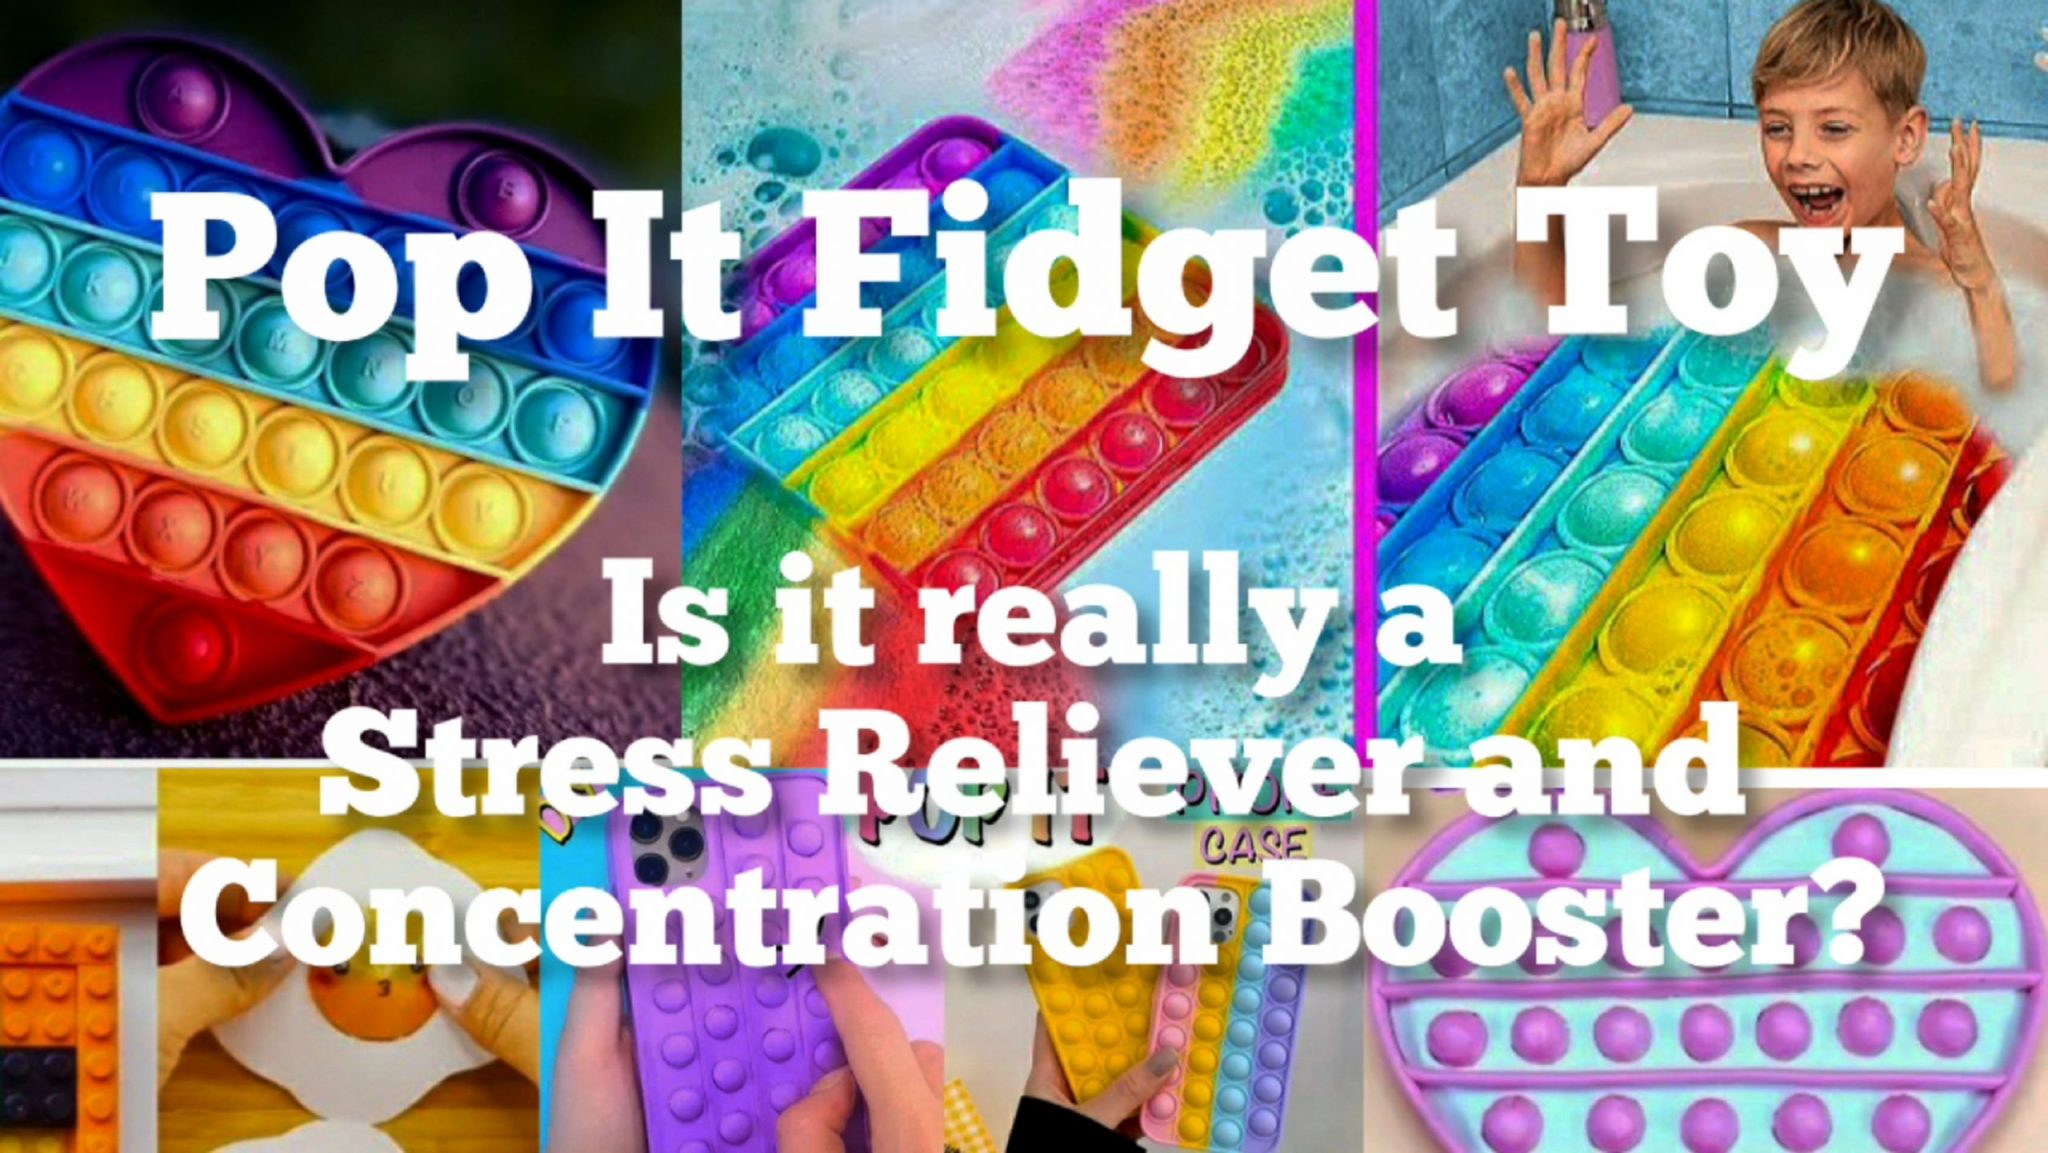 You are currently viewing Pop It Fidget Toy: Should it be allowed in school